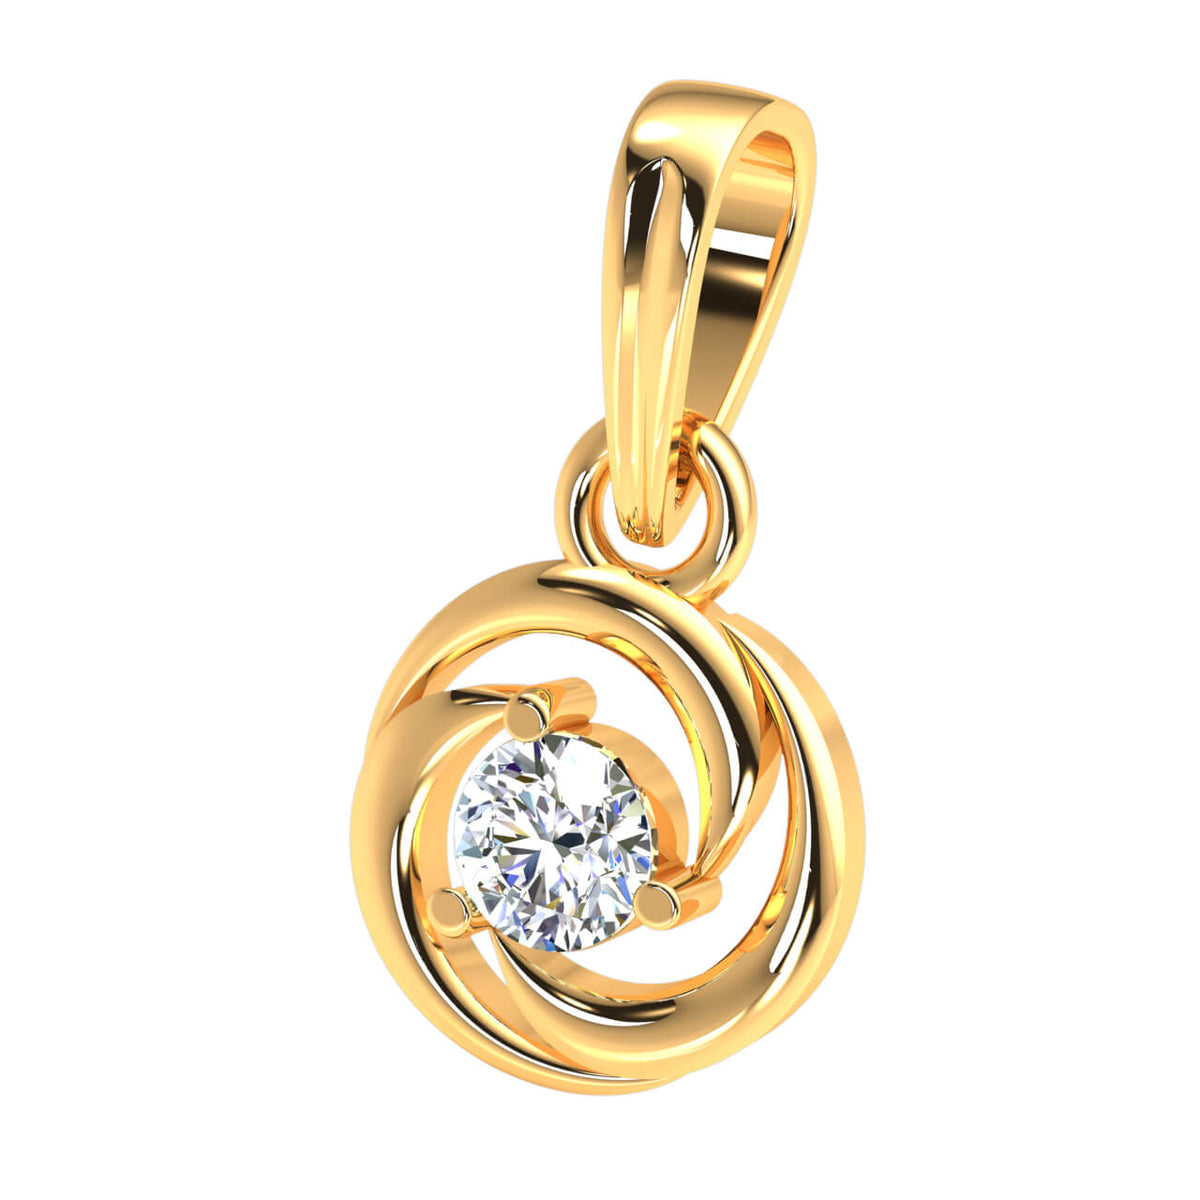 0.17 Ct Drop Round GH I1-I2 Diamond Women's Solitaire Pendant 925 Sterling Silver